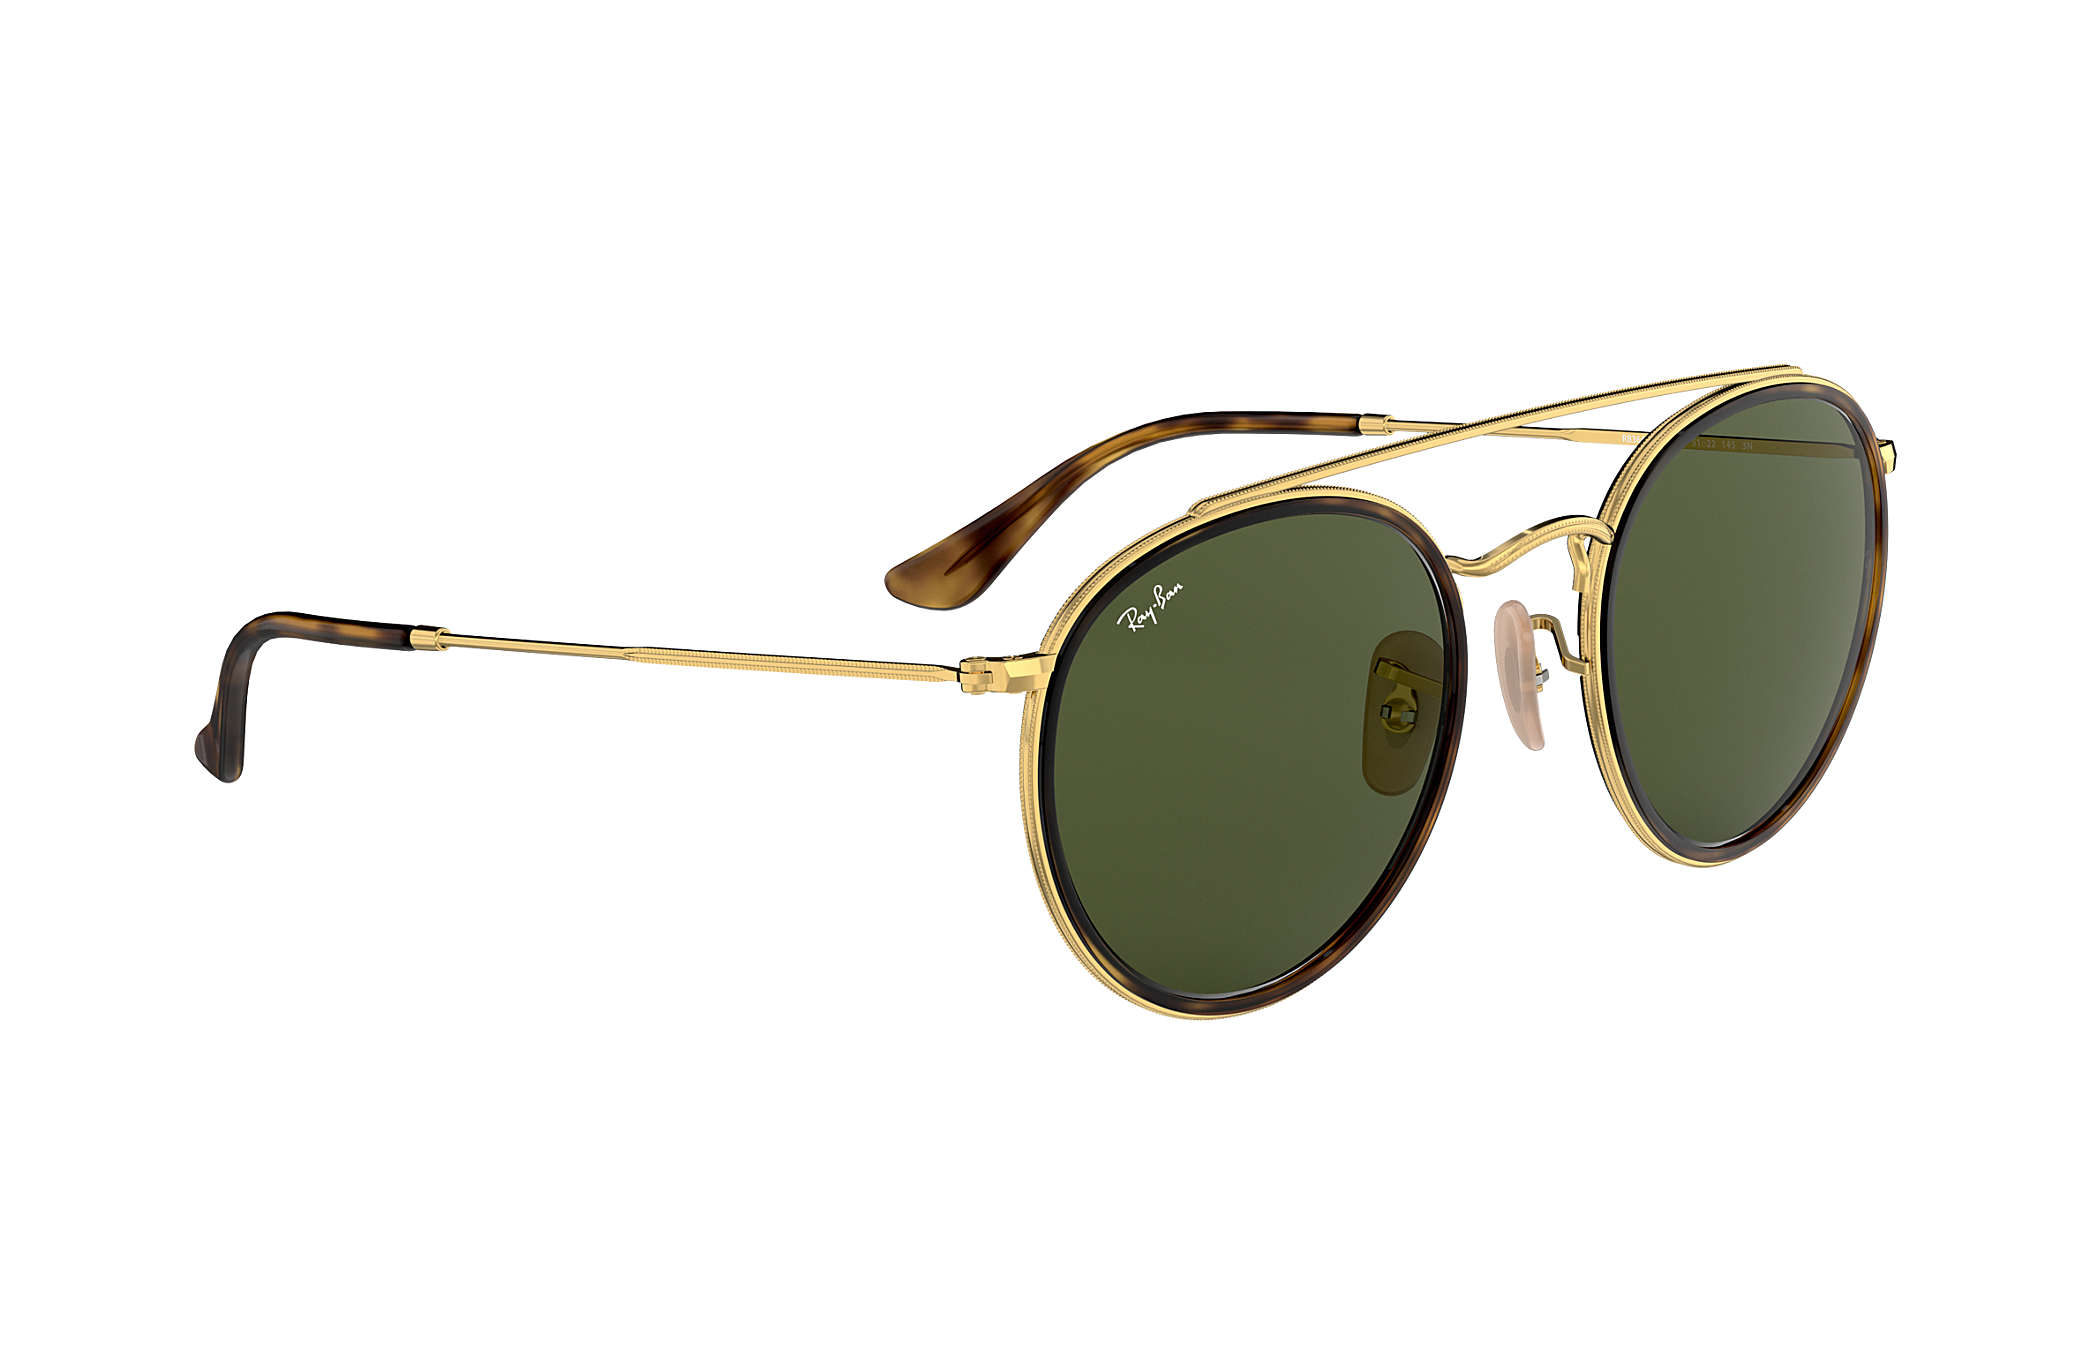 Ray-Ban Round Double Bridge RB3647N Gold - Metal - Green Lenses ... f9b683a66e